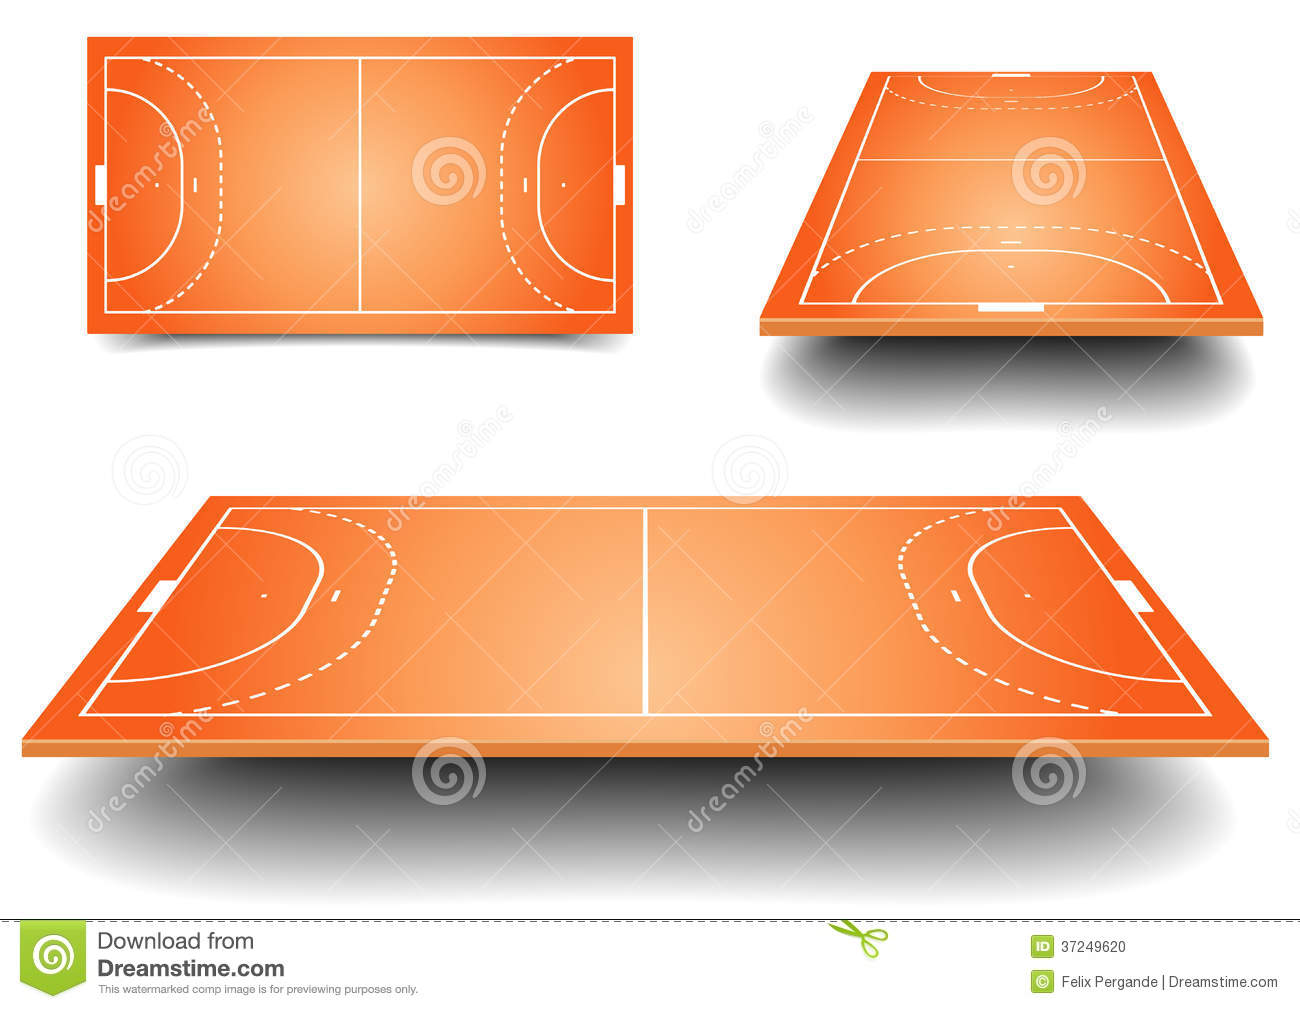 detailed illustration of a handball fields with perspective